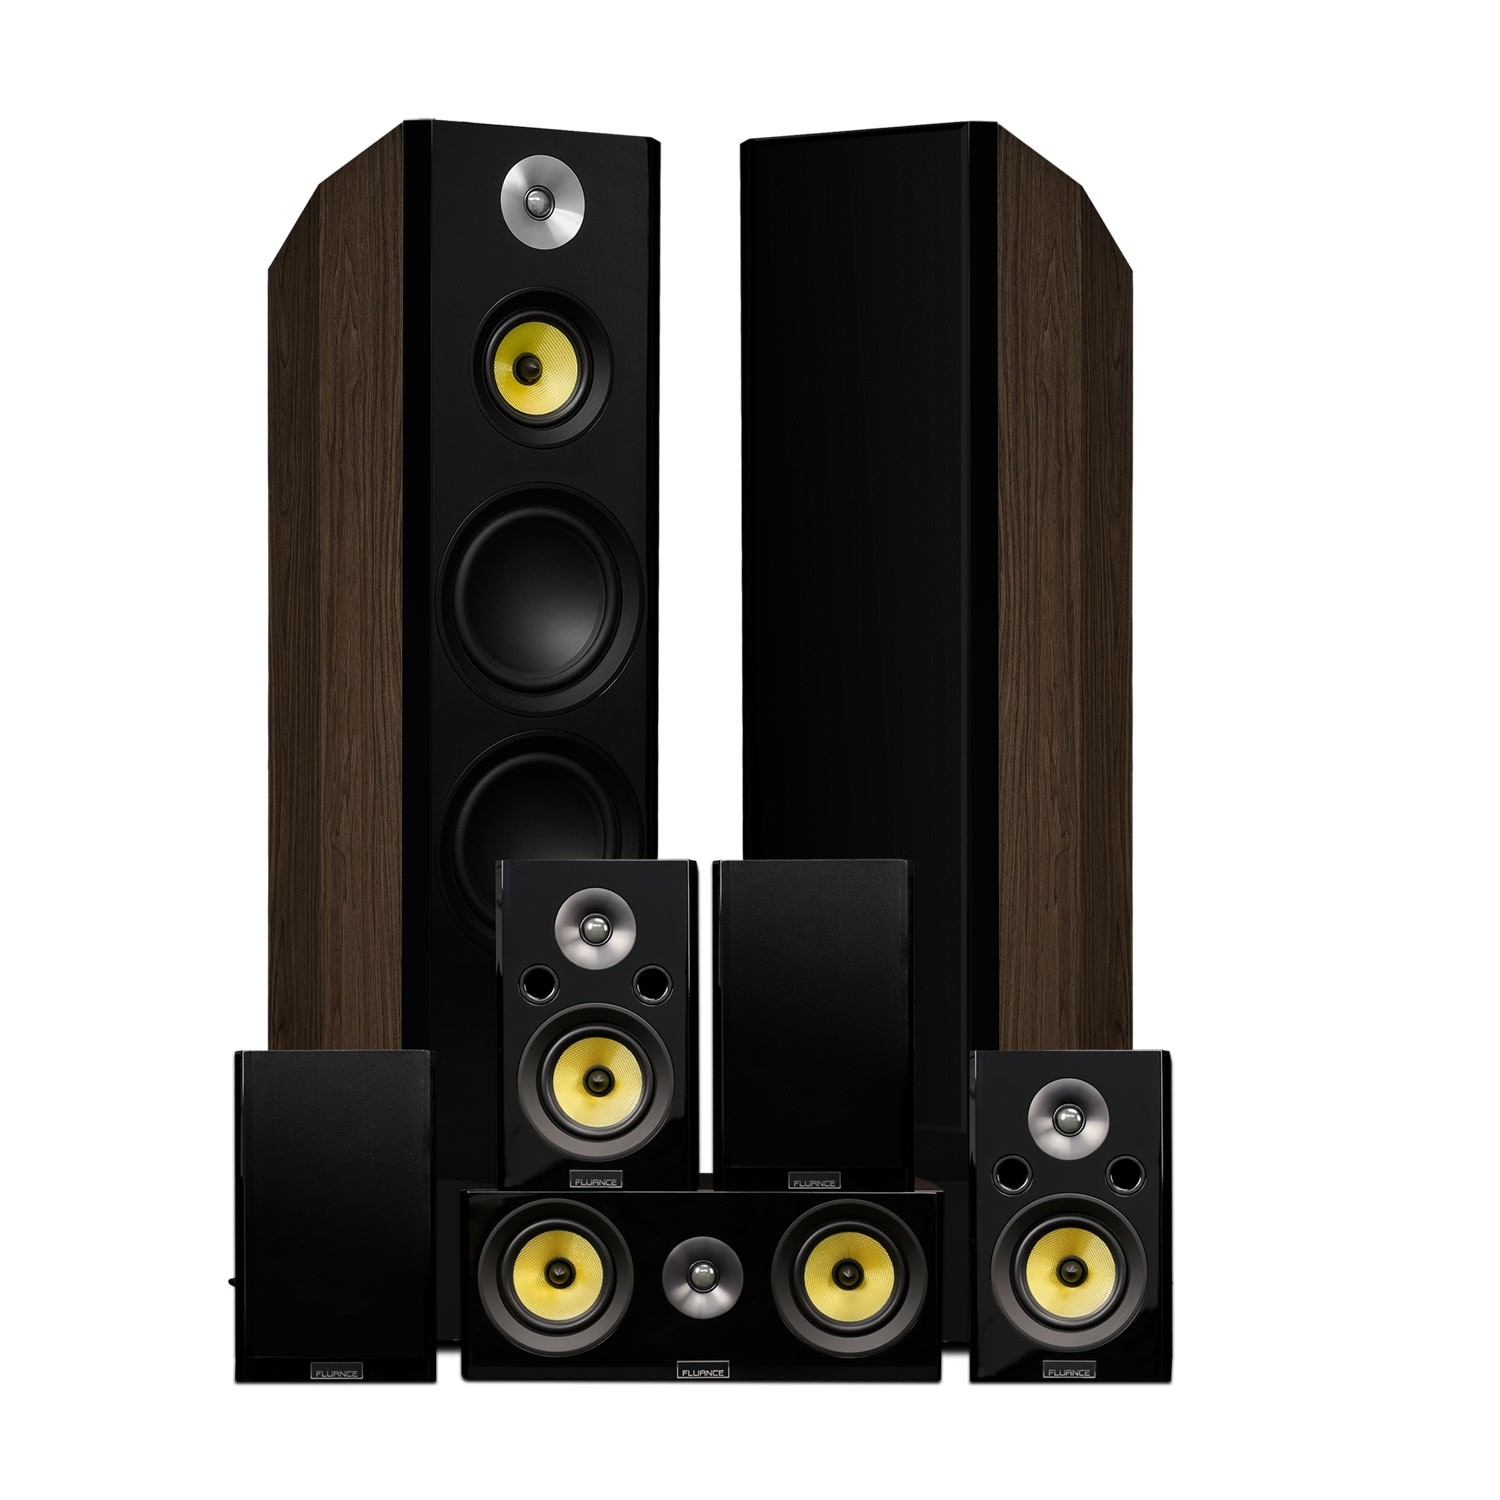 Signature Series Natural Walnut Surround Sound Home Theater 7.0 Channel Speaker System